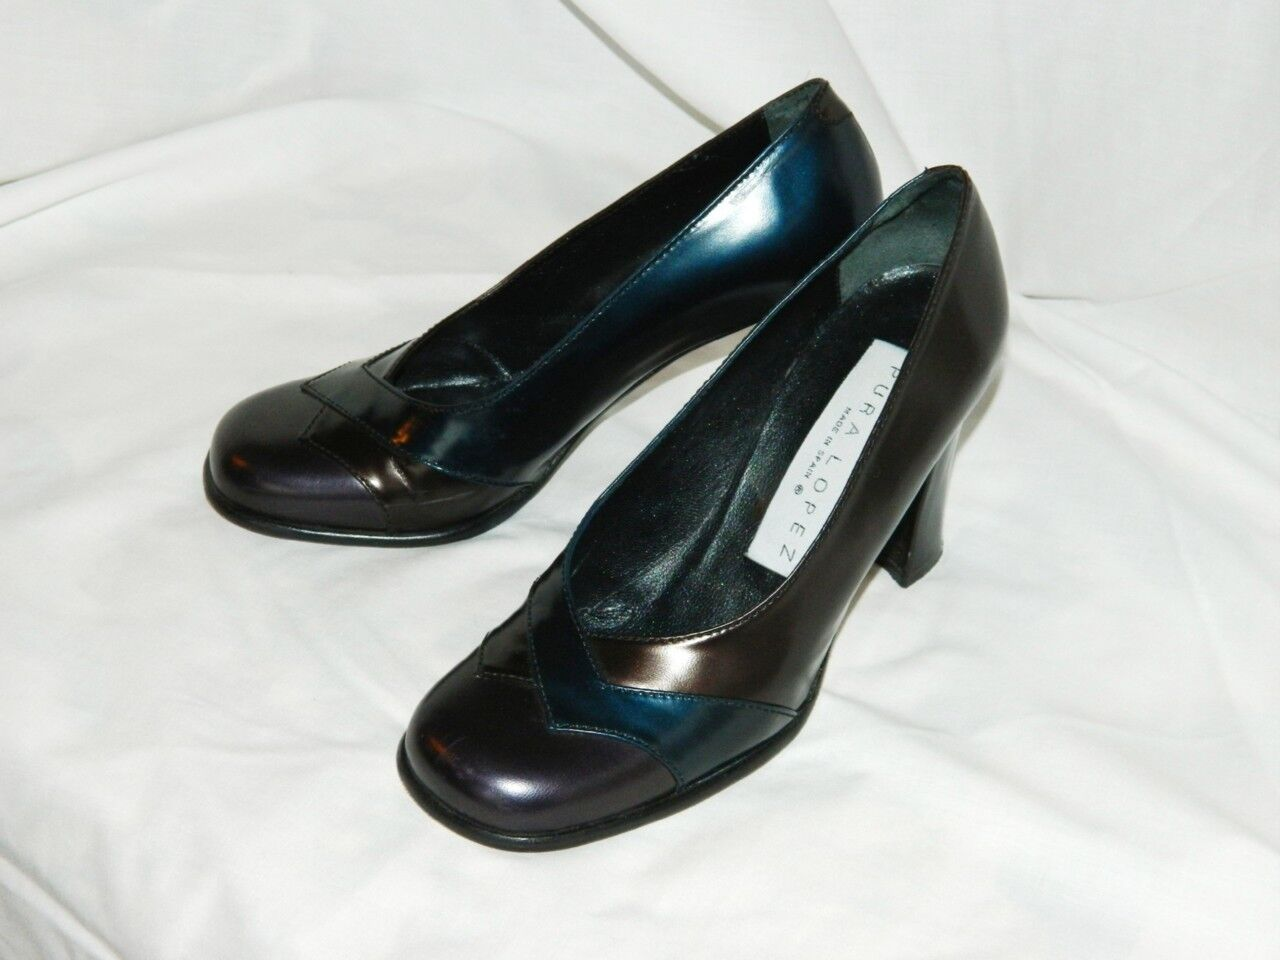 Pura Lopez High Heel Round Toe Pumps in Multi-colord Shimmering Leather, US 6